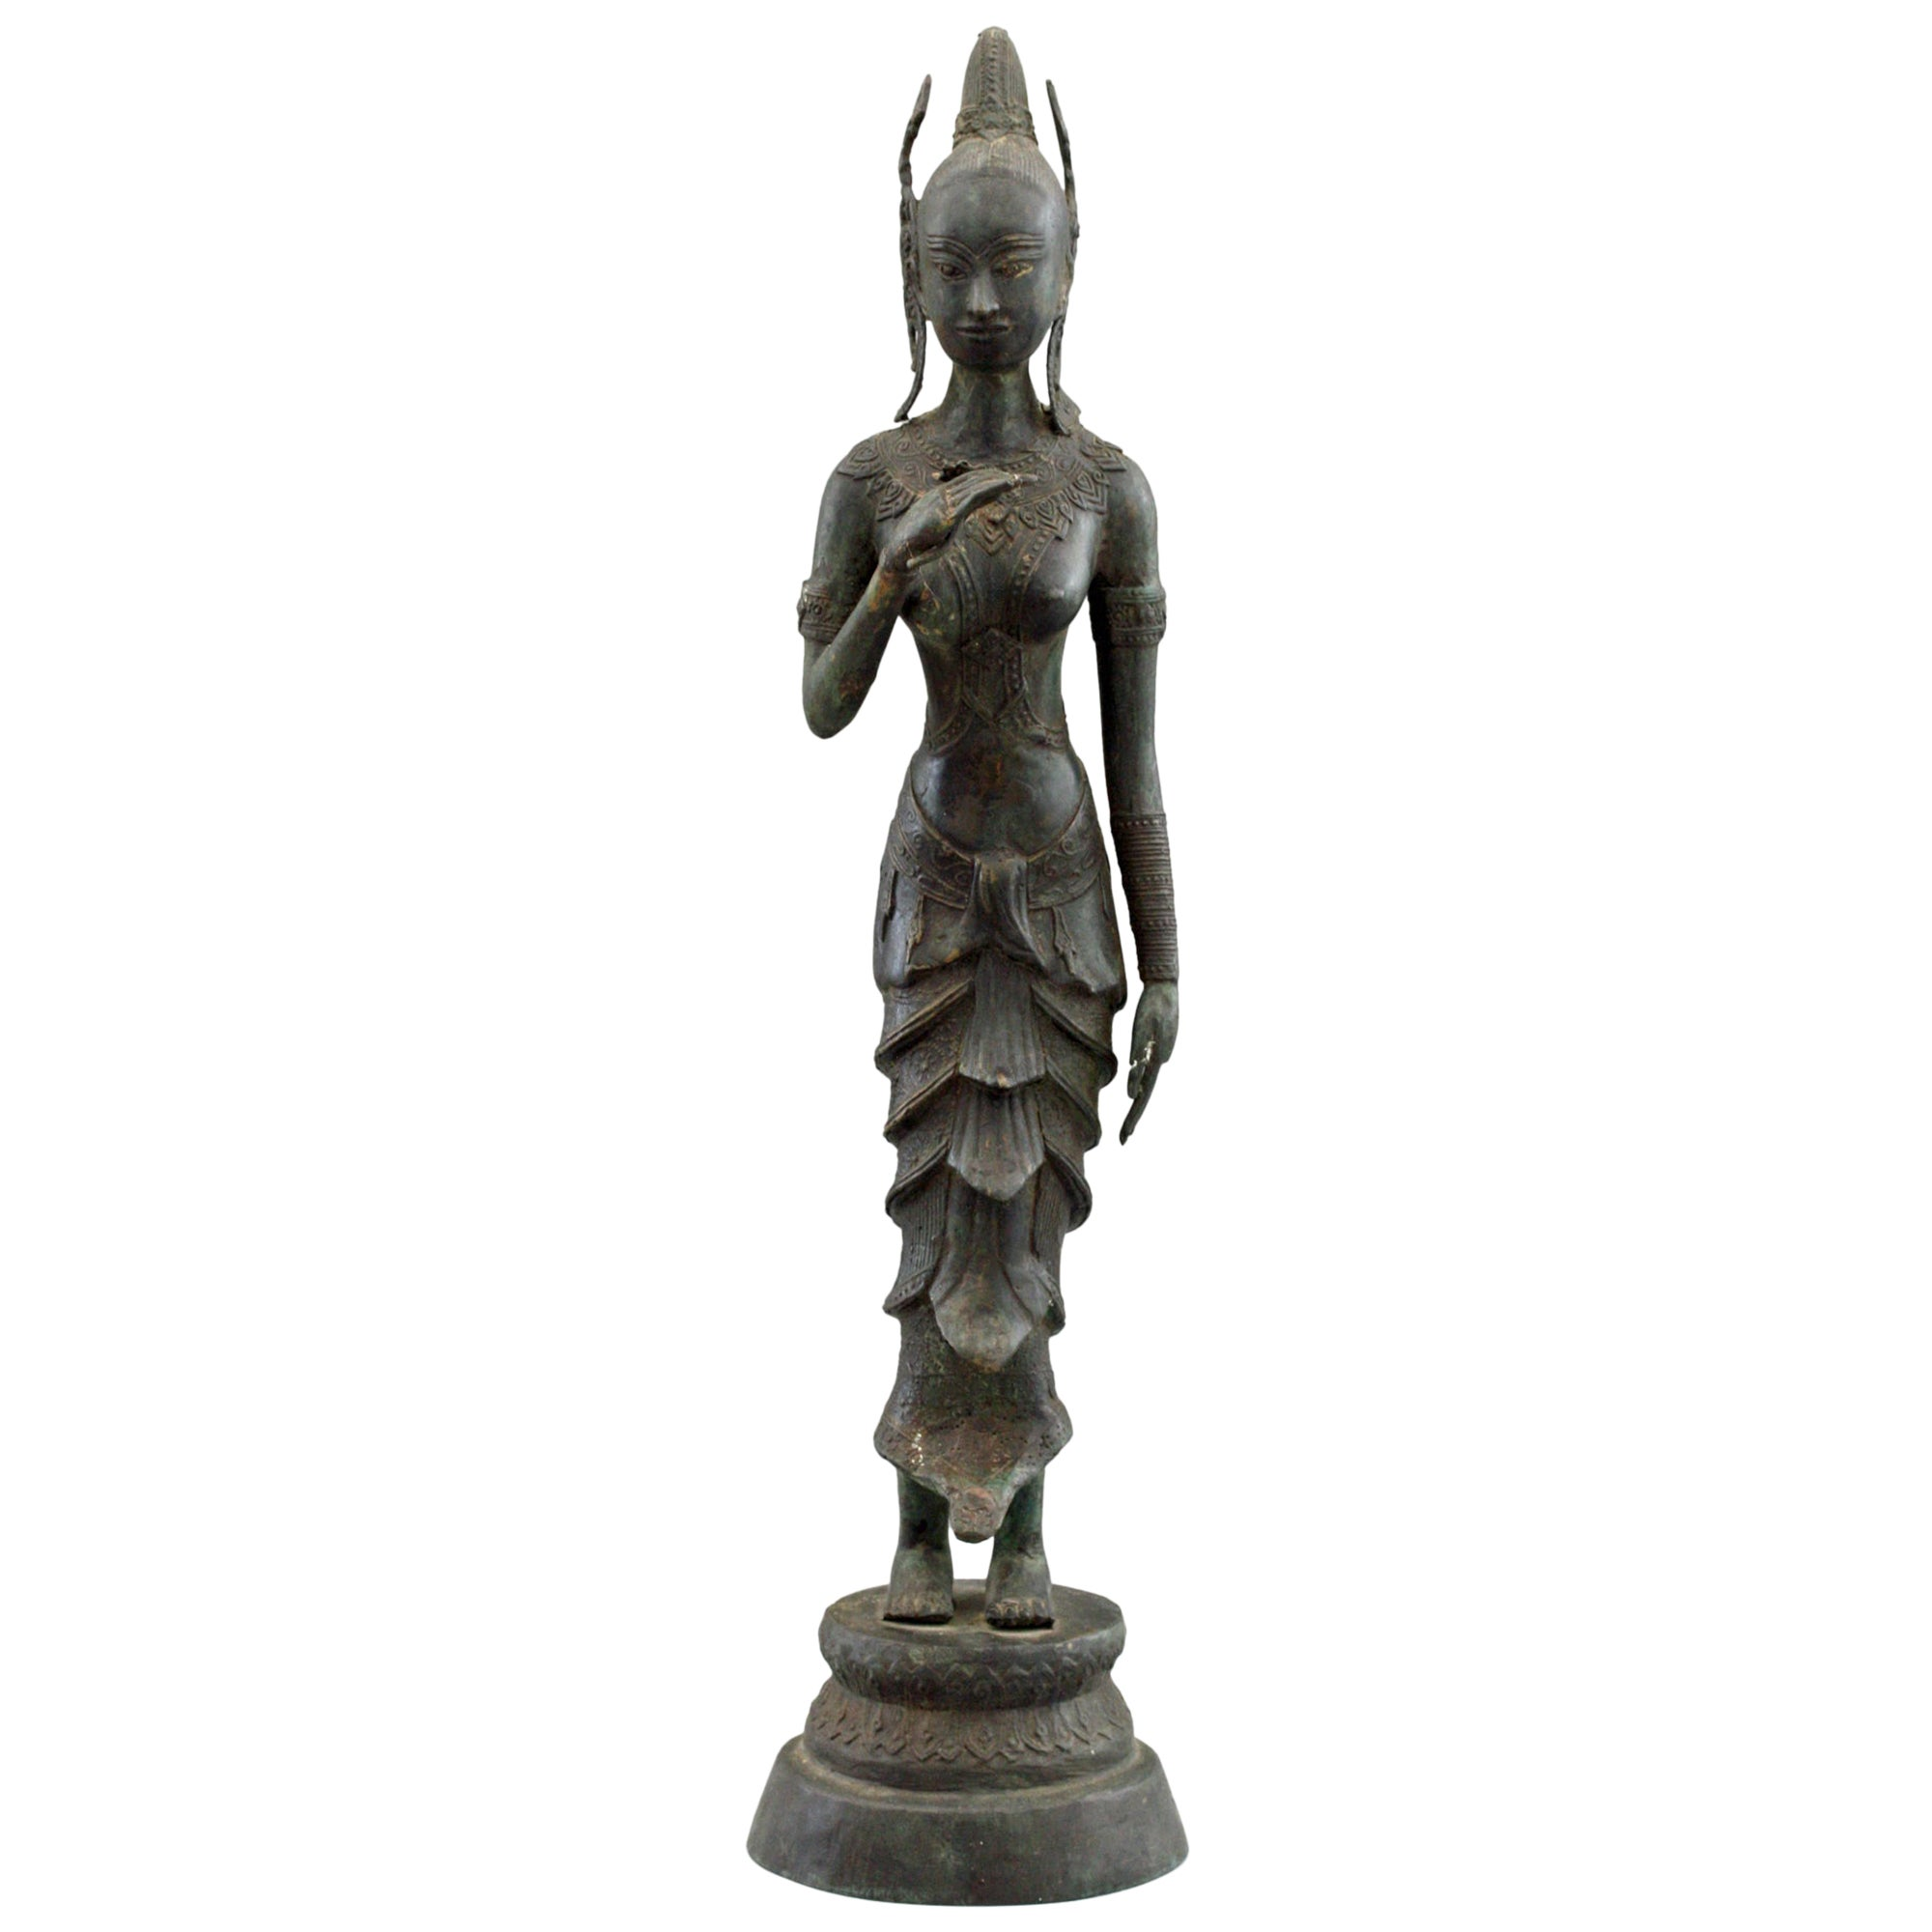 Indonesian Antique Bronze Figure of a Slender Goddess with Lotus Flower